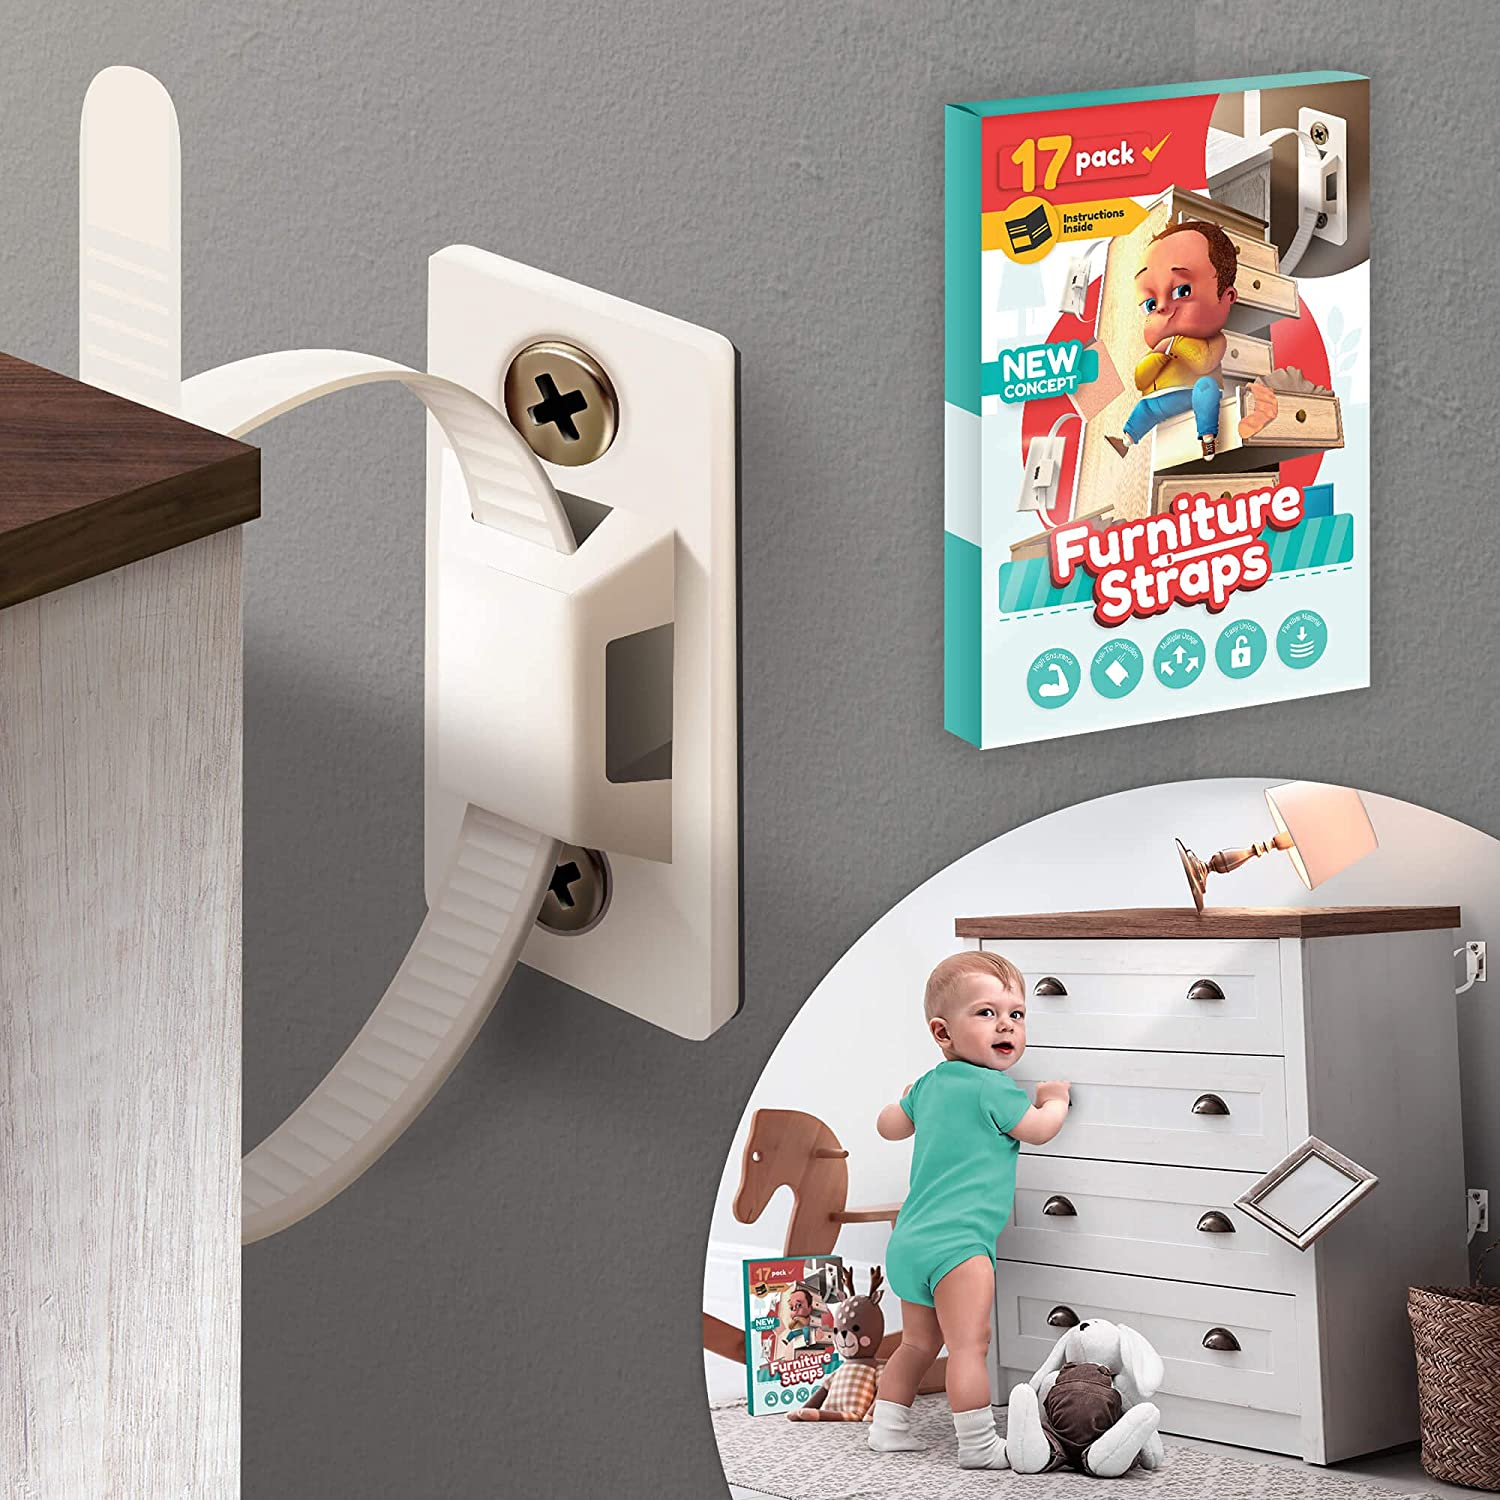 17 XXL-Pack Furniture Anchors for Wall – Furniture Anchors for Baby Proofing – Flexible Furniture Safety Straps - Secure Earthquake Resistant Anti Tip Kit – Dresser Wall Safety Anchor Bracket for Kids